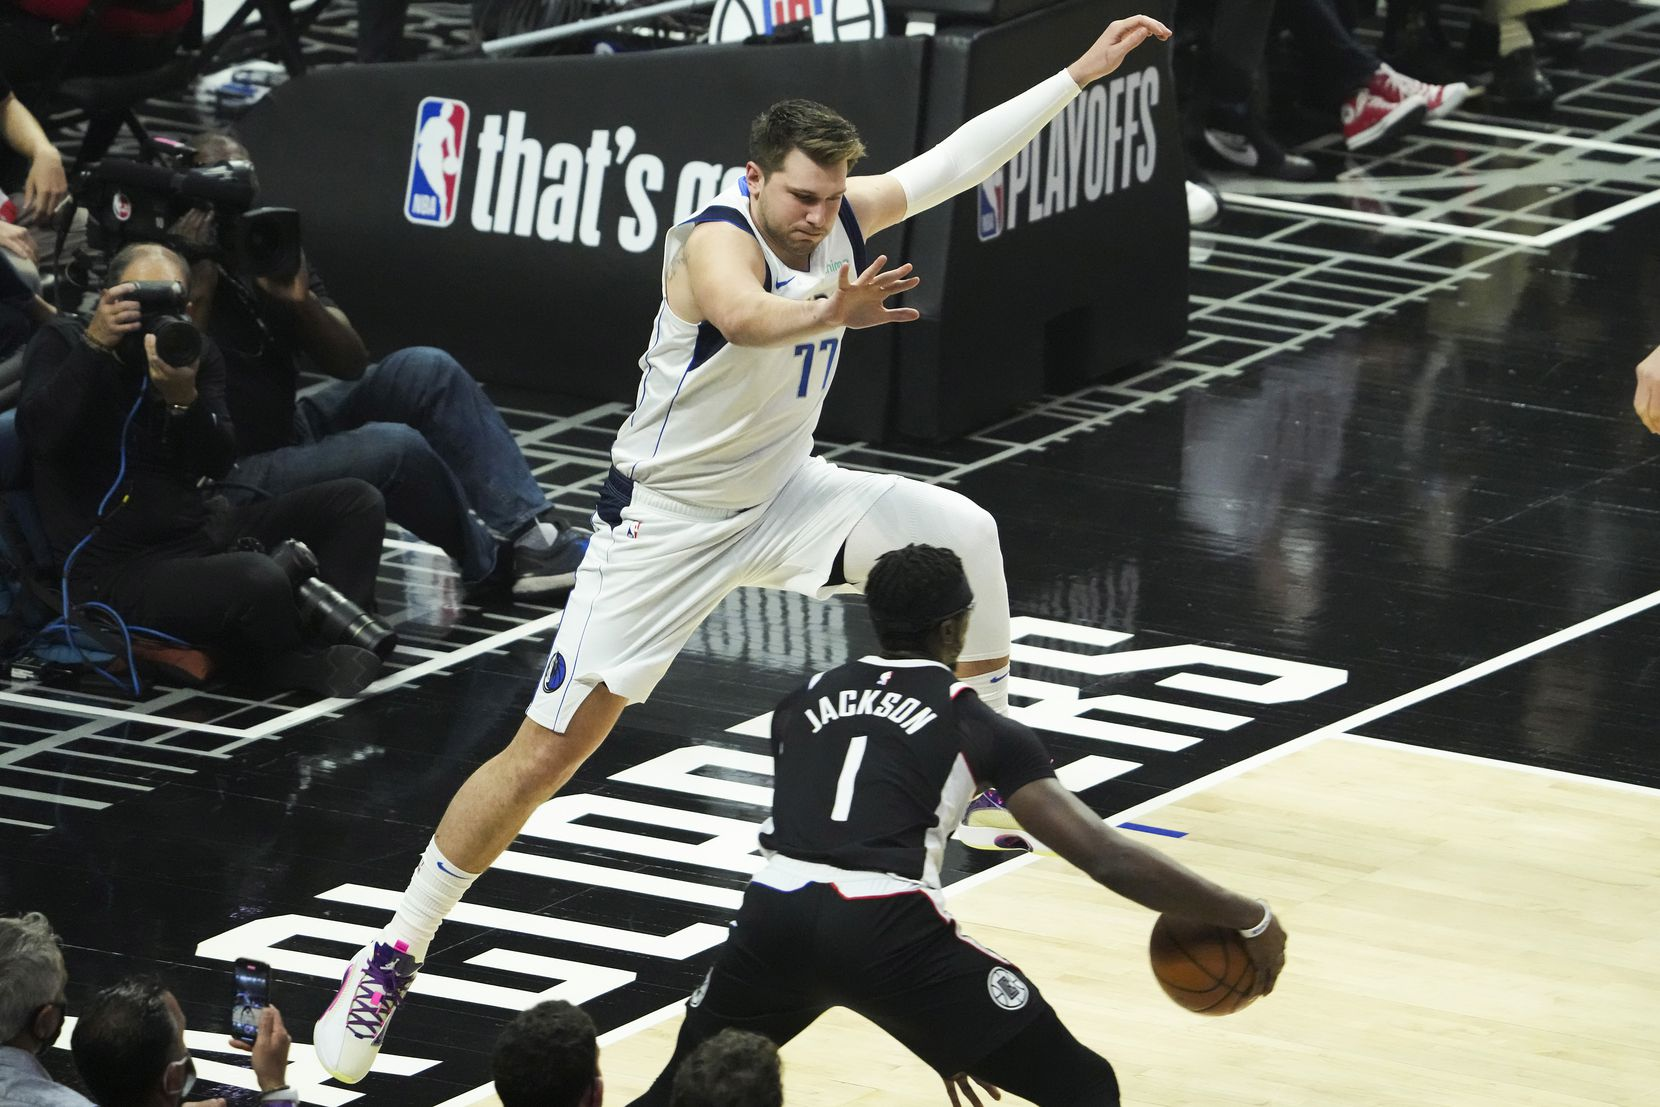 Dallas Mavericks guard Luka Doncic (77) defends against LA Clippers guard Reggie Jackson (1) during the first quarter of Game 7 of an NBA playoff series at the Staples Center on Sunday, June 6, 2021, in Los Angeles.